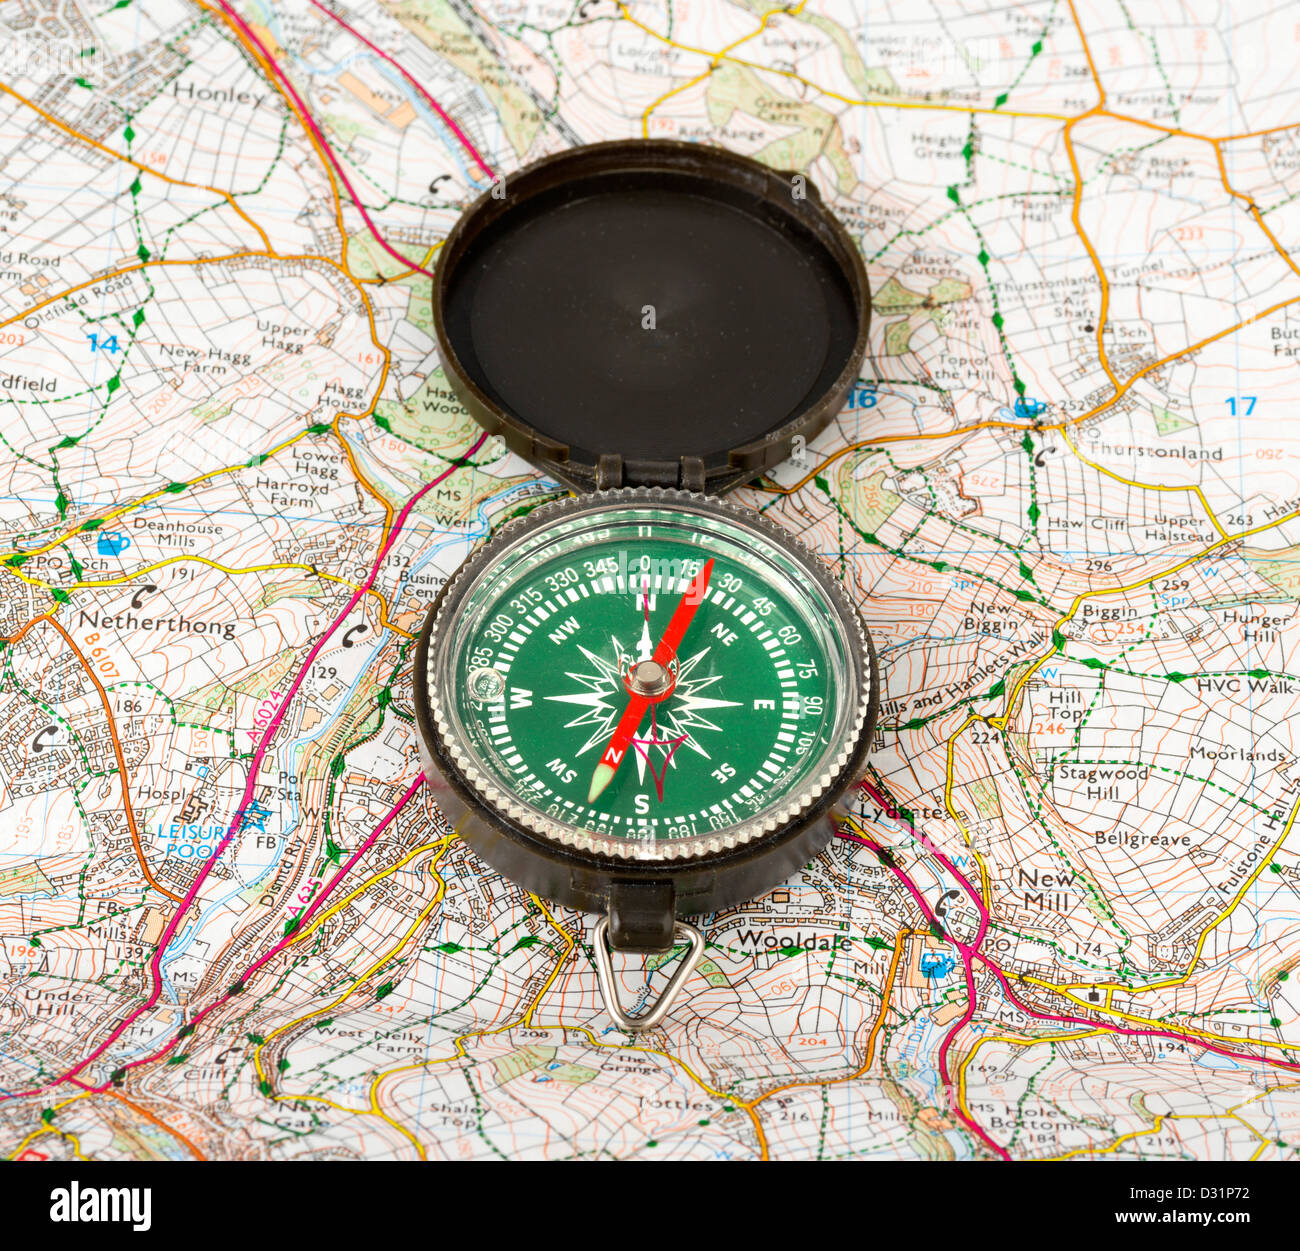 Compass on an Ordnance Survey map, UK - Stock Image